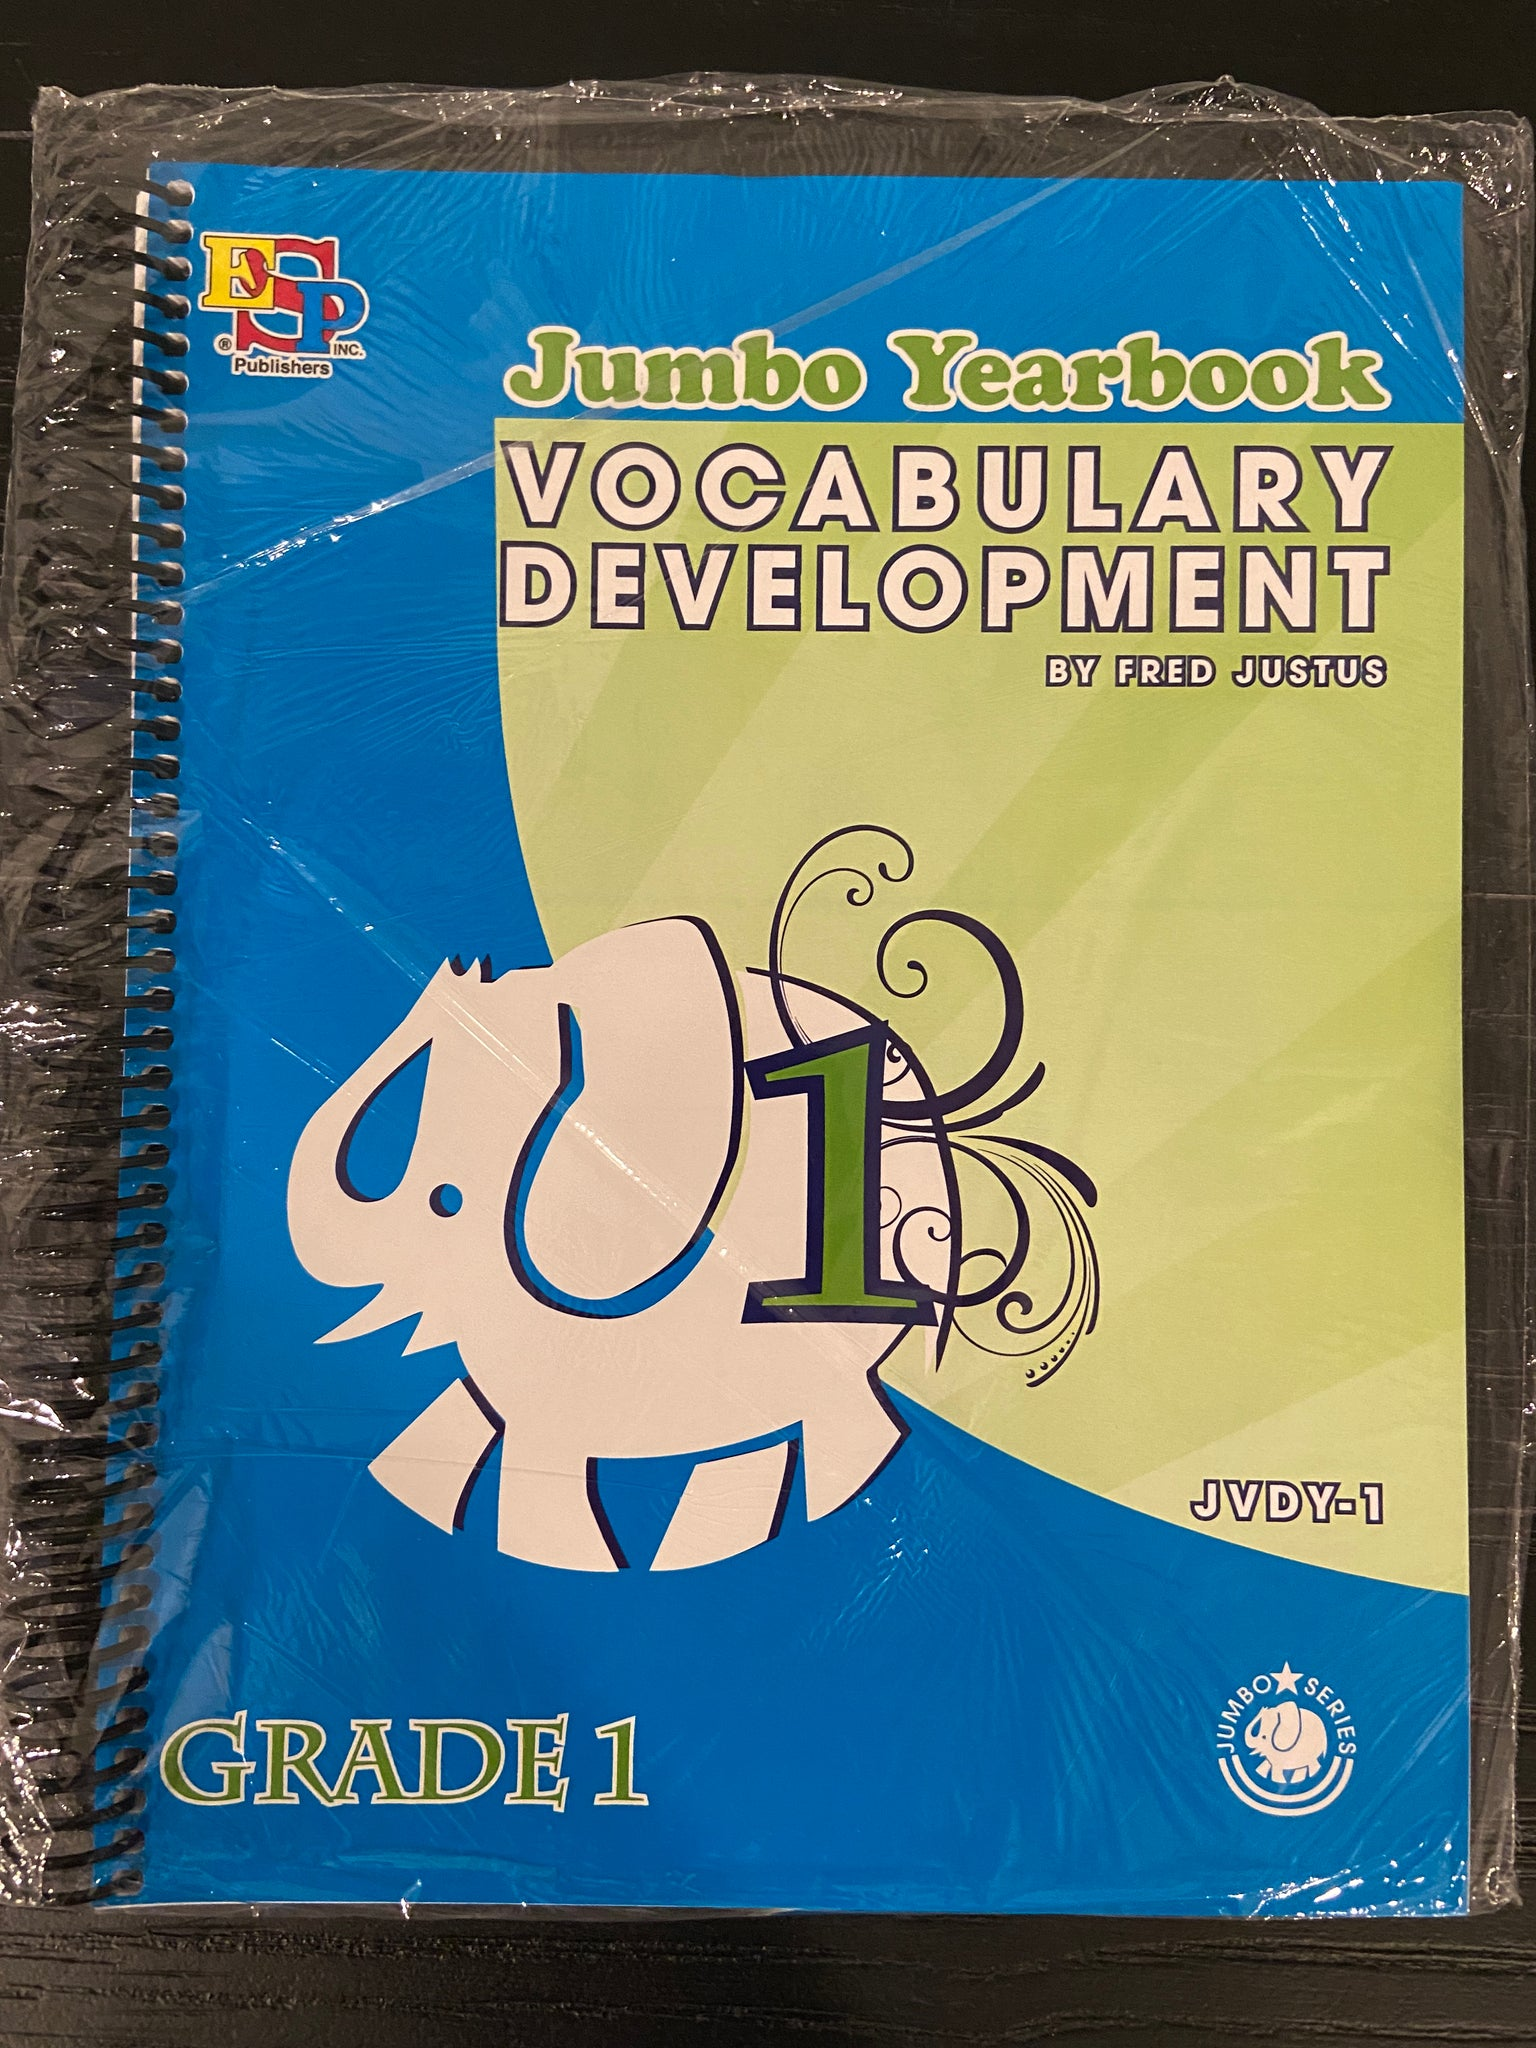 Jumbo Vocabulary Dev. YB (JVDY-1)